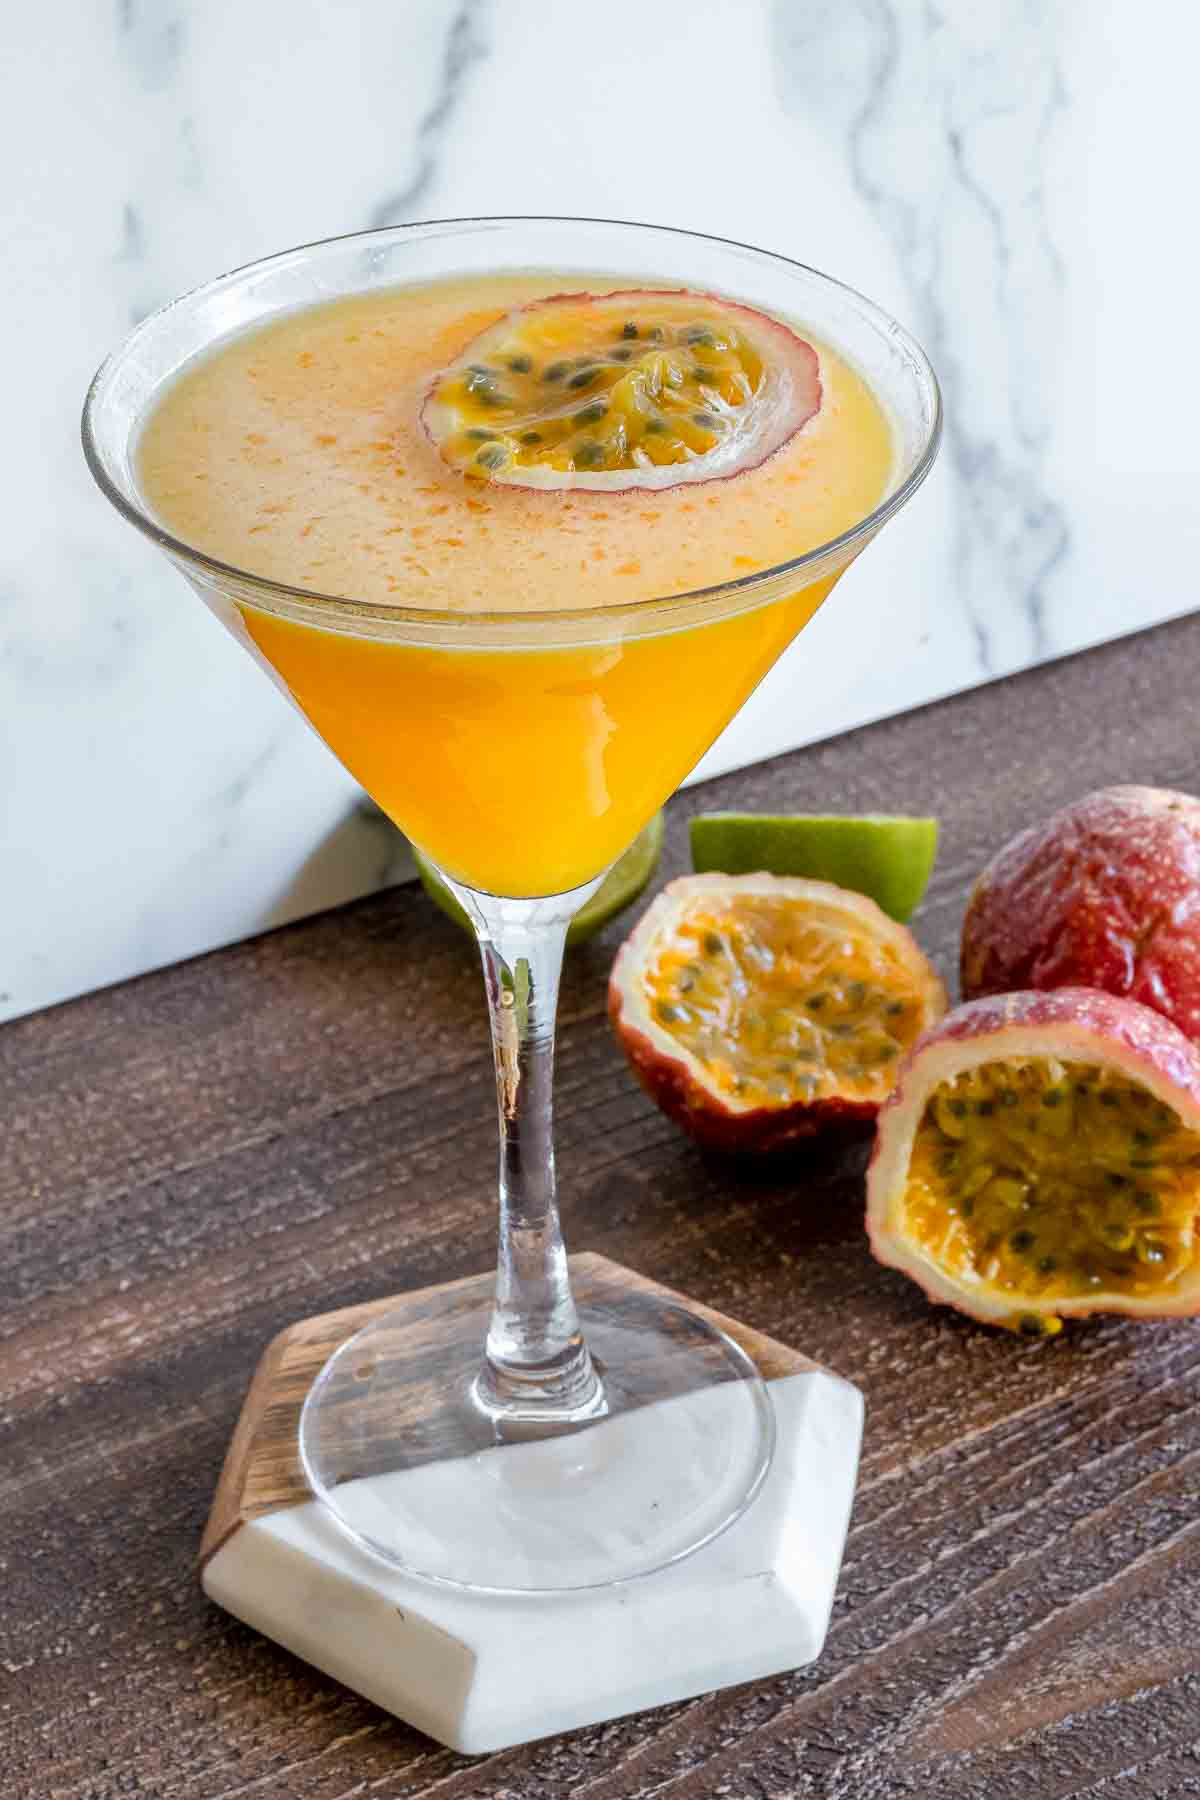 Passion fruit and vodka martini in a martini class with passion fruit slice floating.